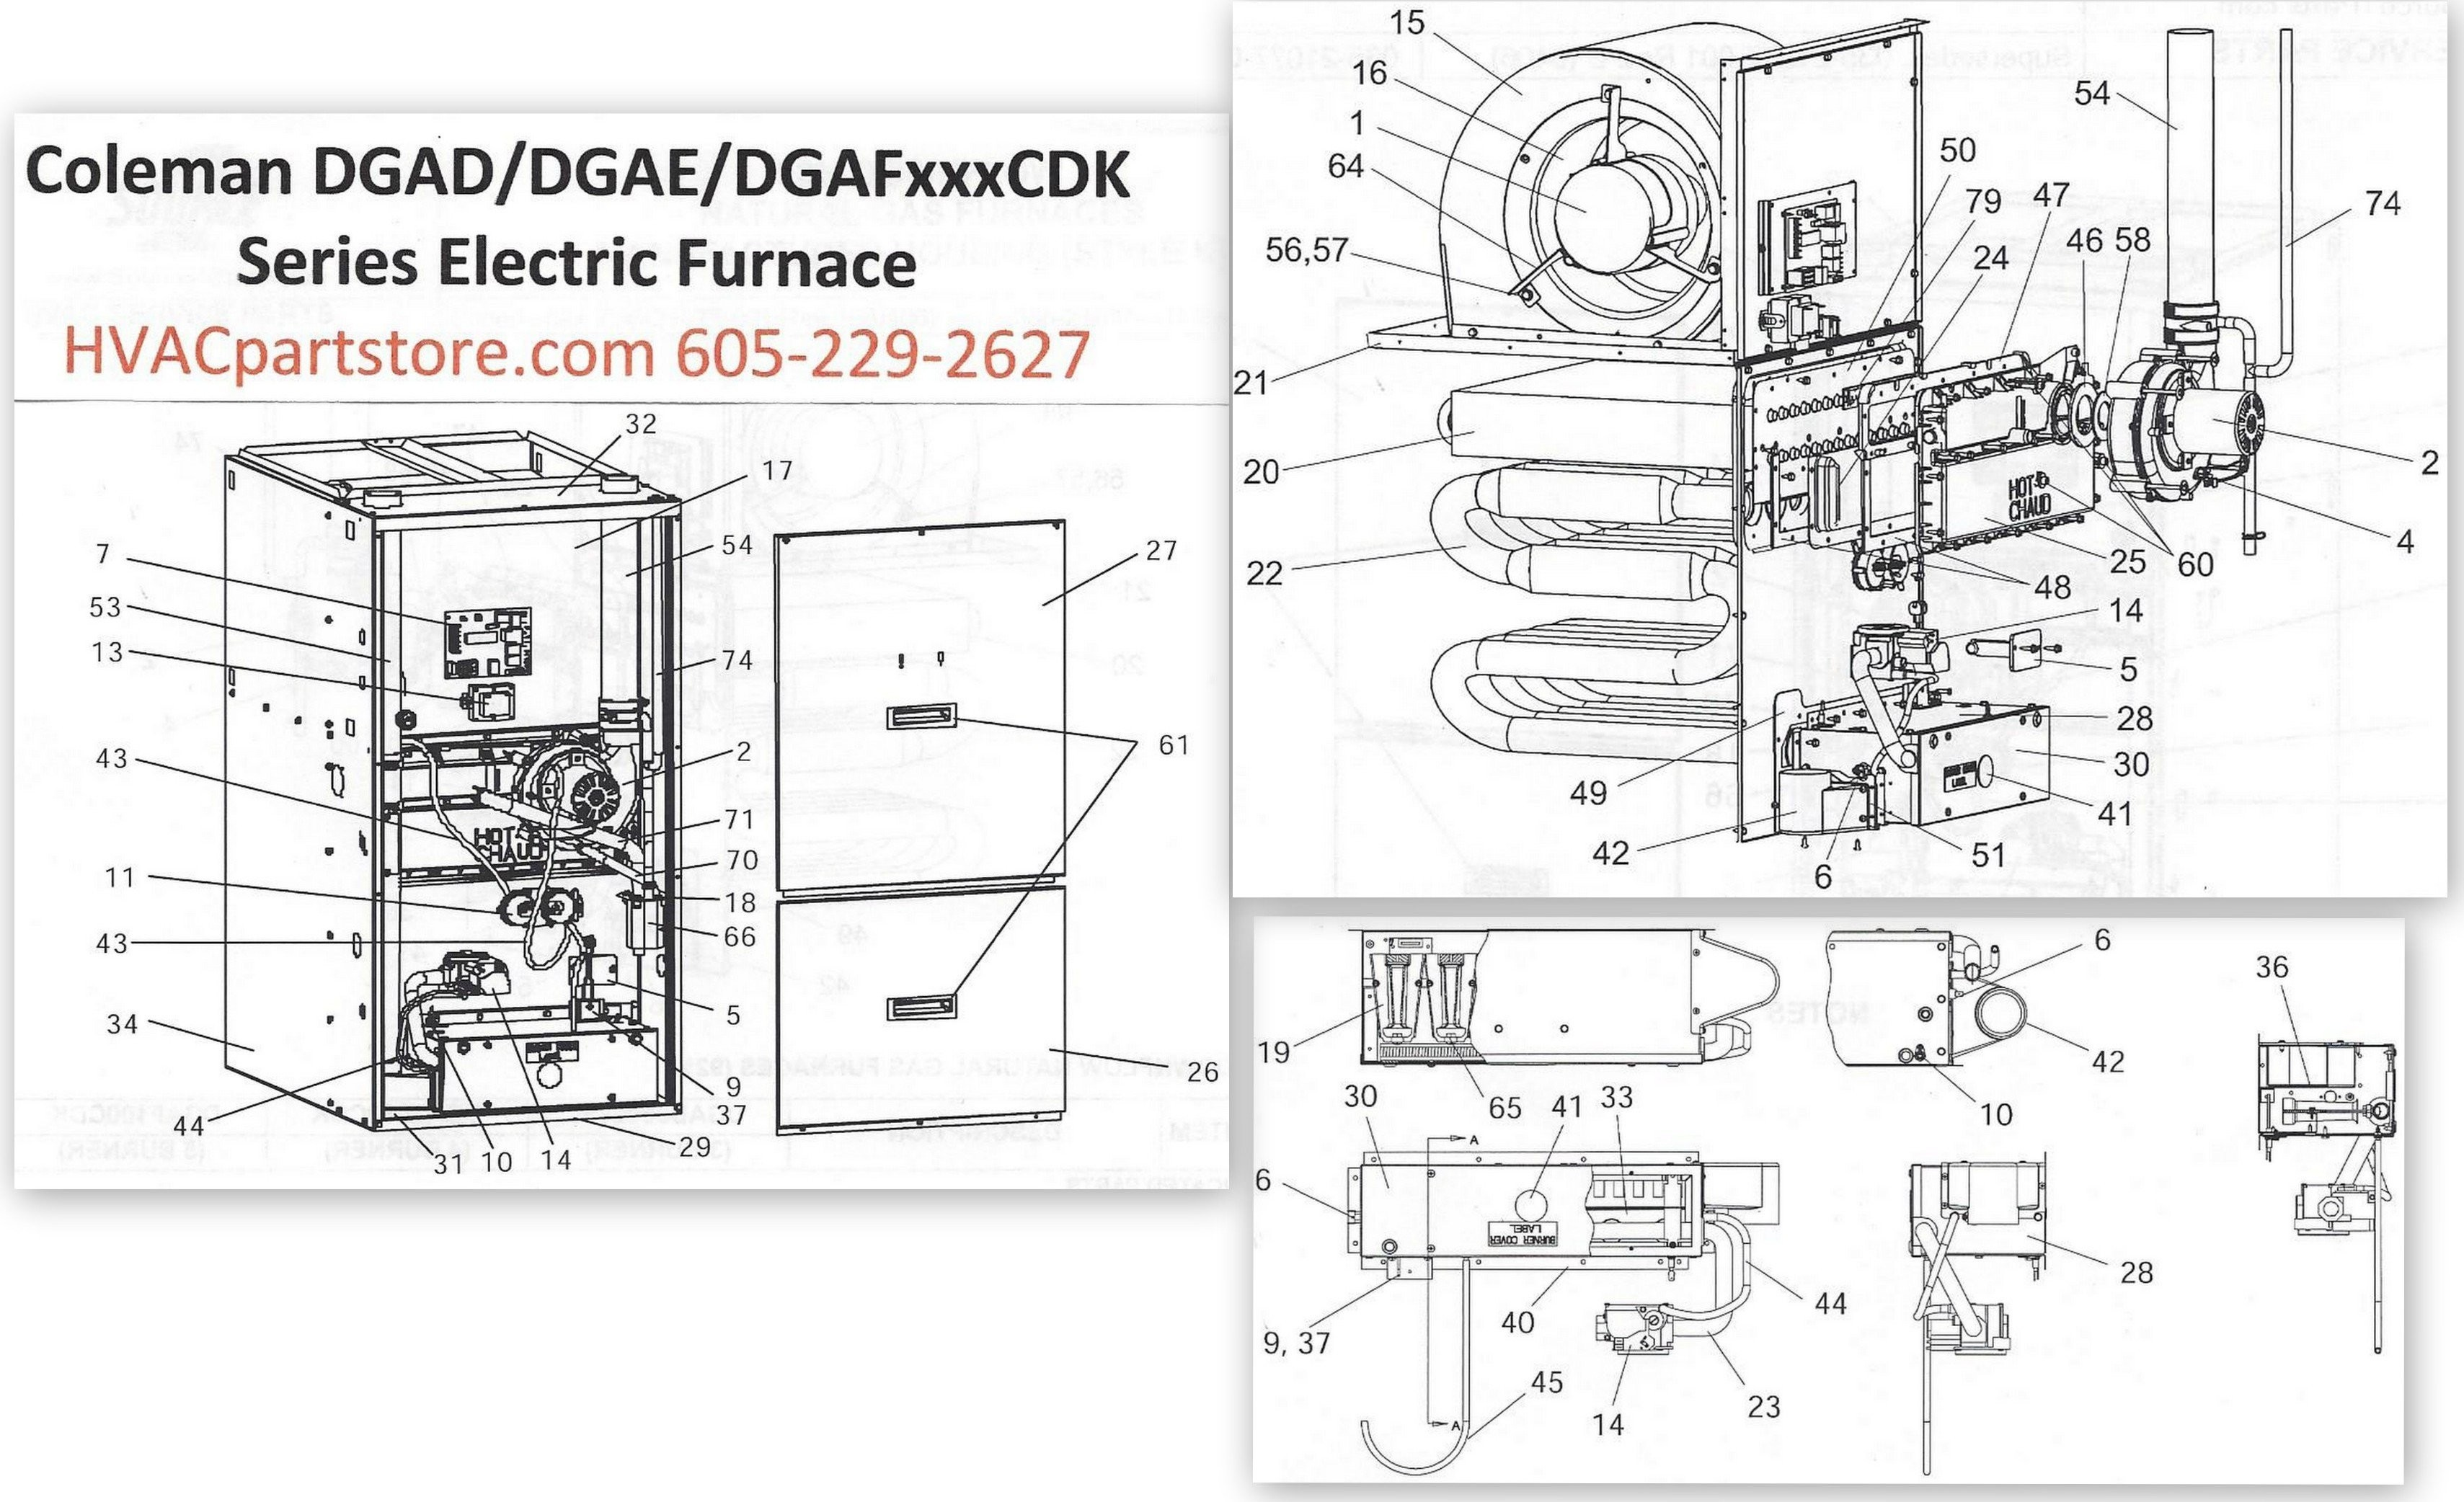 Armstrong Furnace Parts Diagram fortmaker Gas Furnace Wiring Diagram Best Wiring Diagram Of Armstrong Furnace Parts Diagram